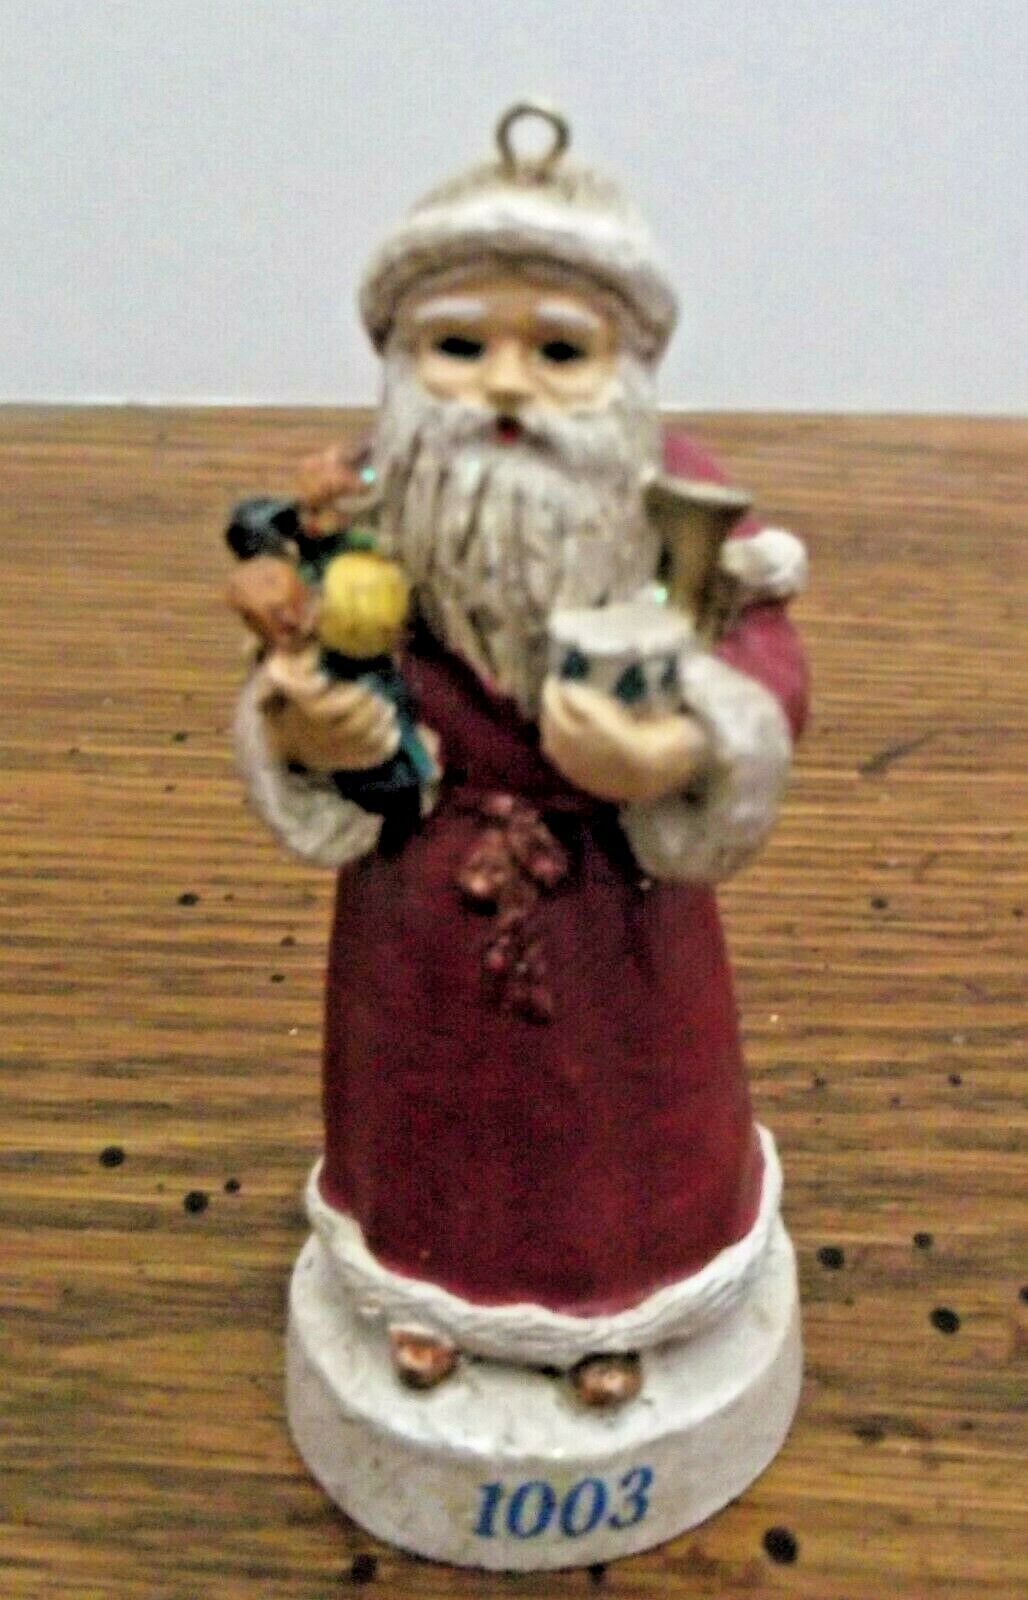 Primary image for Russ Berrie Old World Santa Ornament Figurine Through The Ages 1003